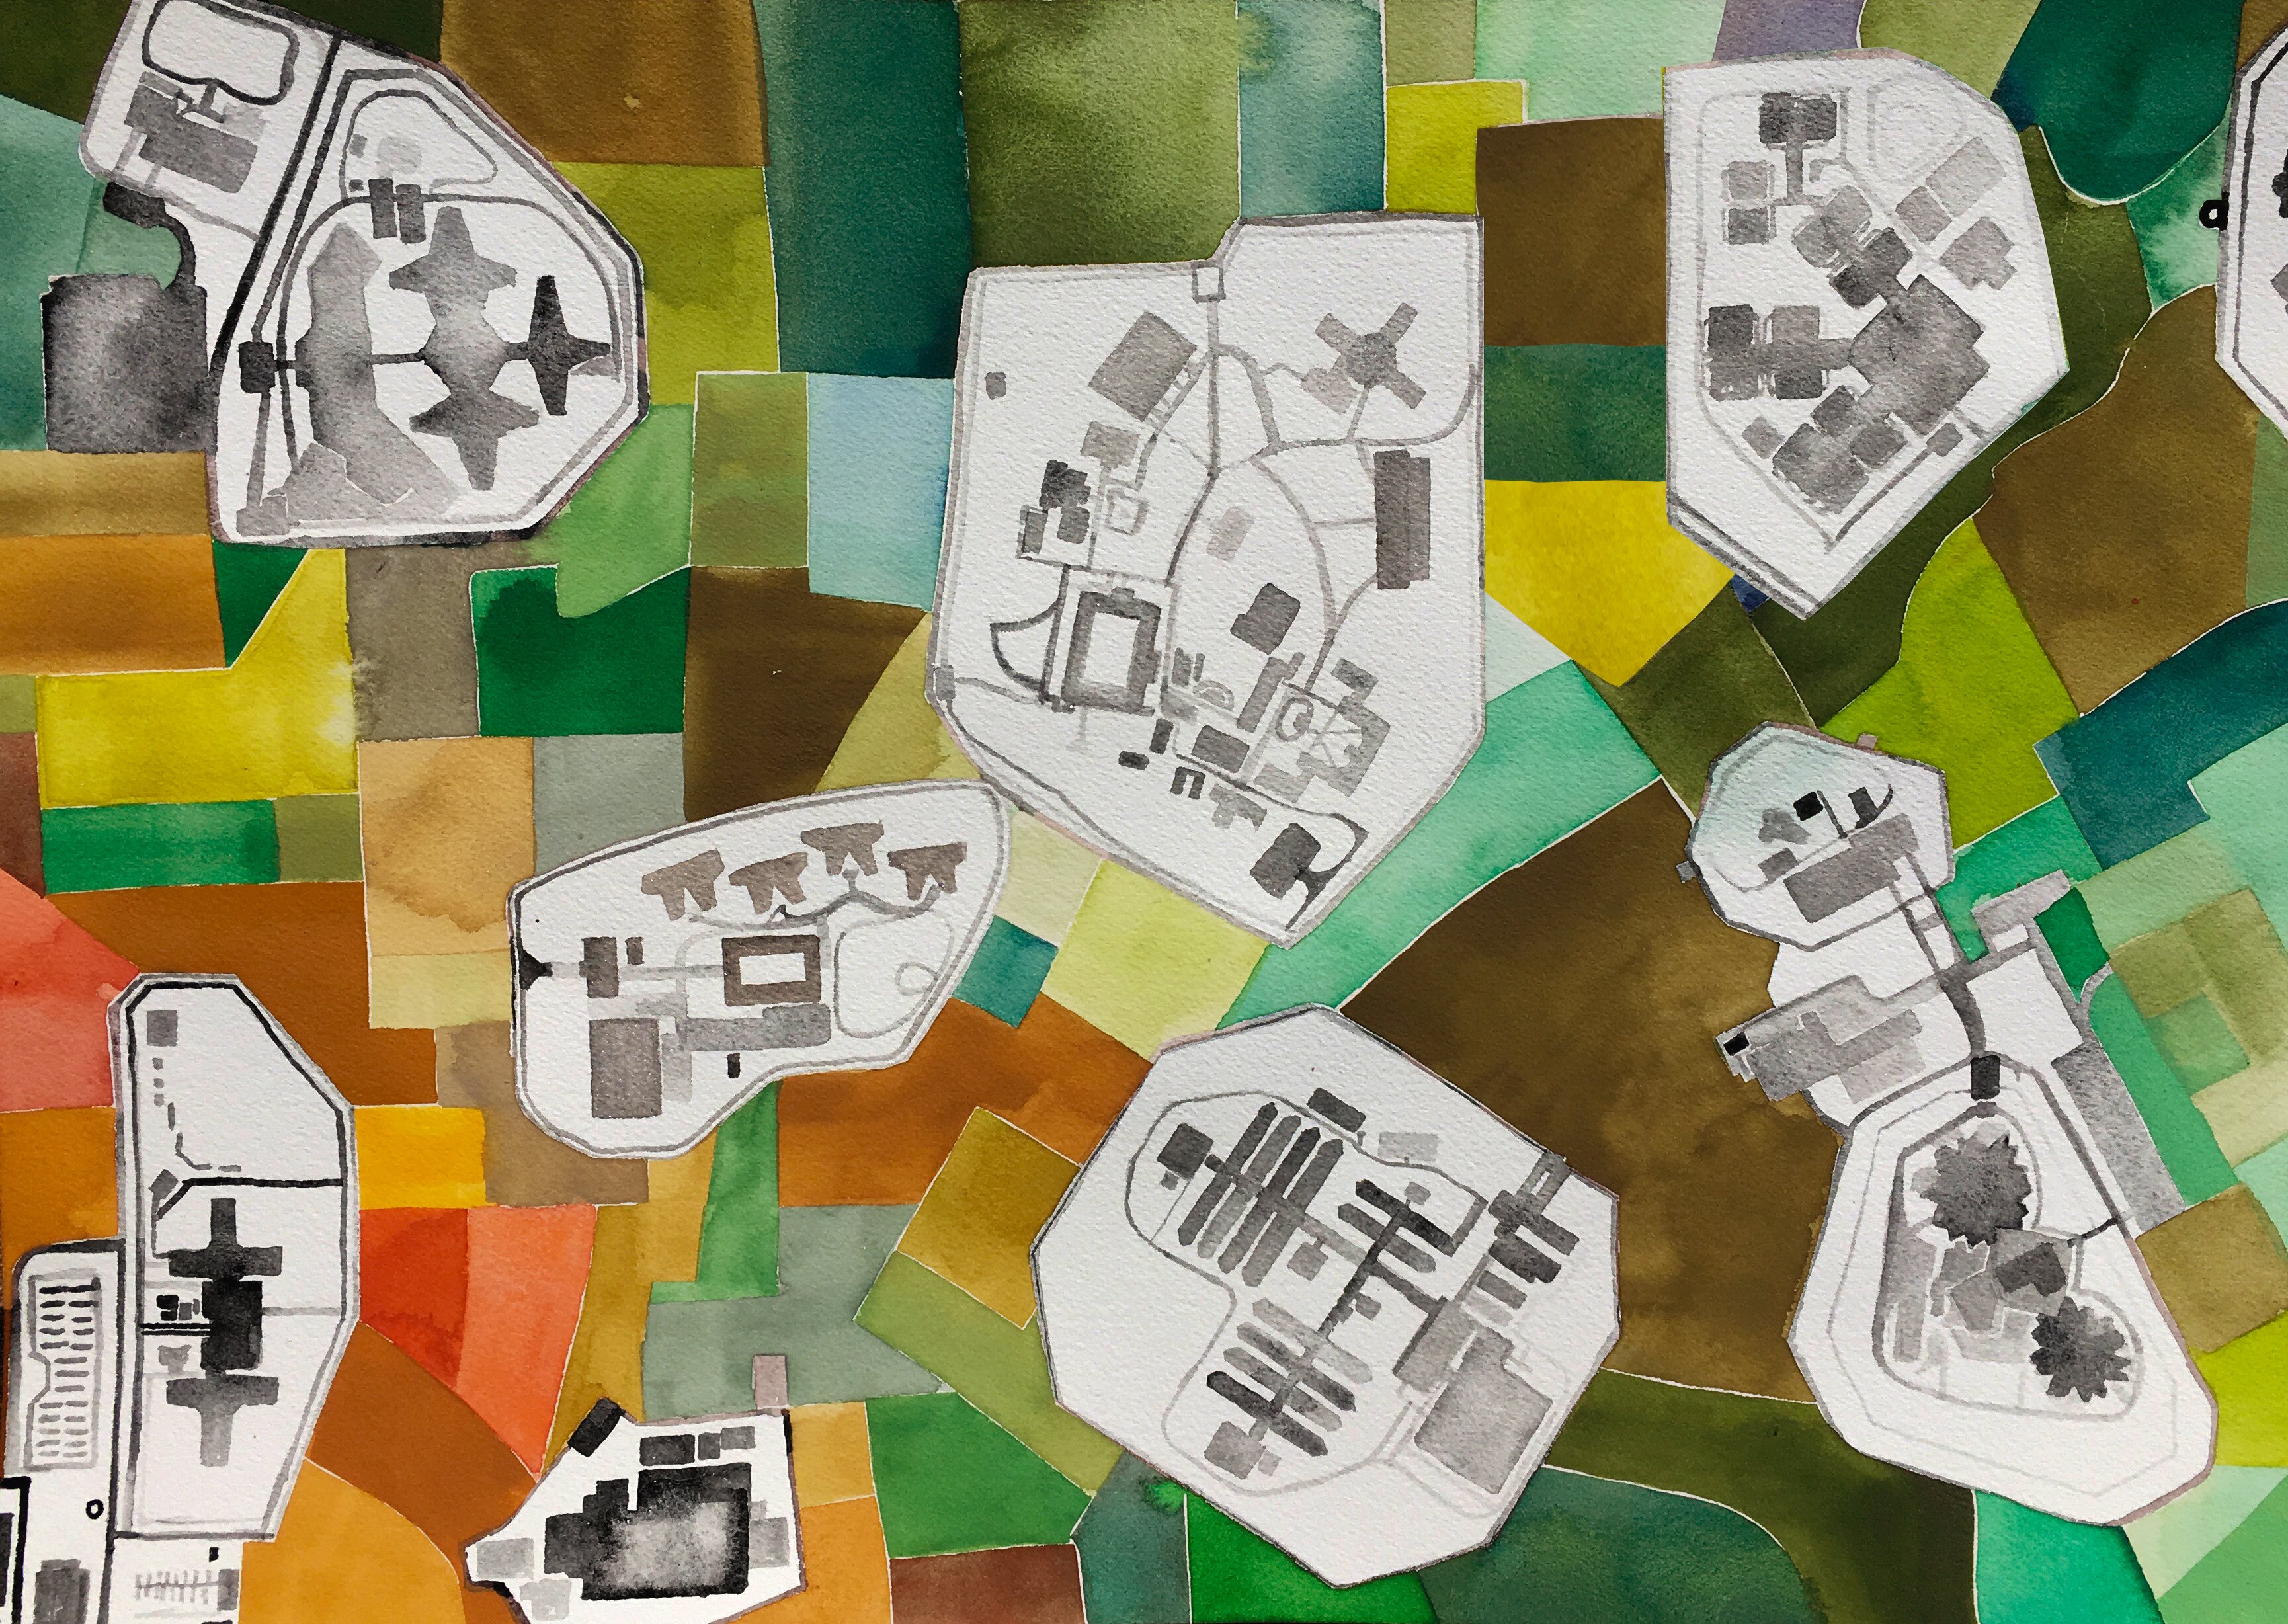 A painting depicts a patchwork of colors: green, yellow, brown, orange, and red. Within this patchwork are the painted outlines of black and white complexes of buildings.